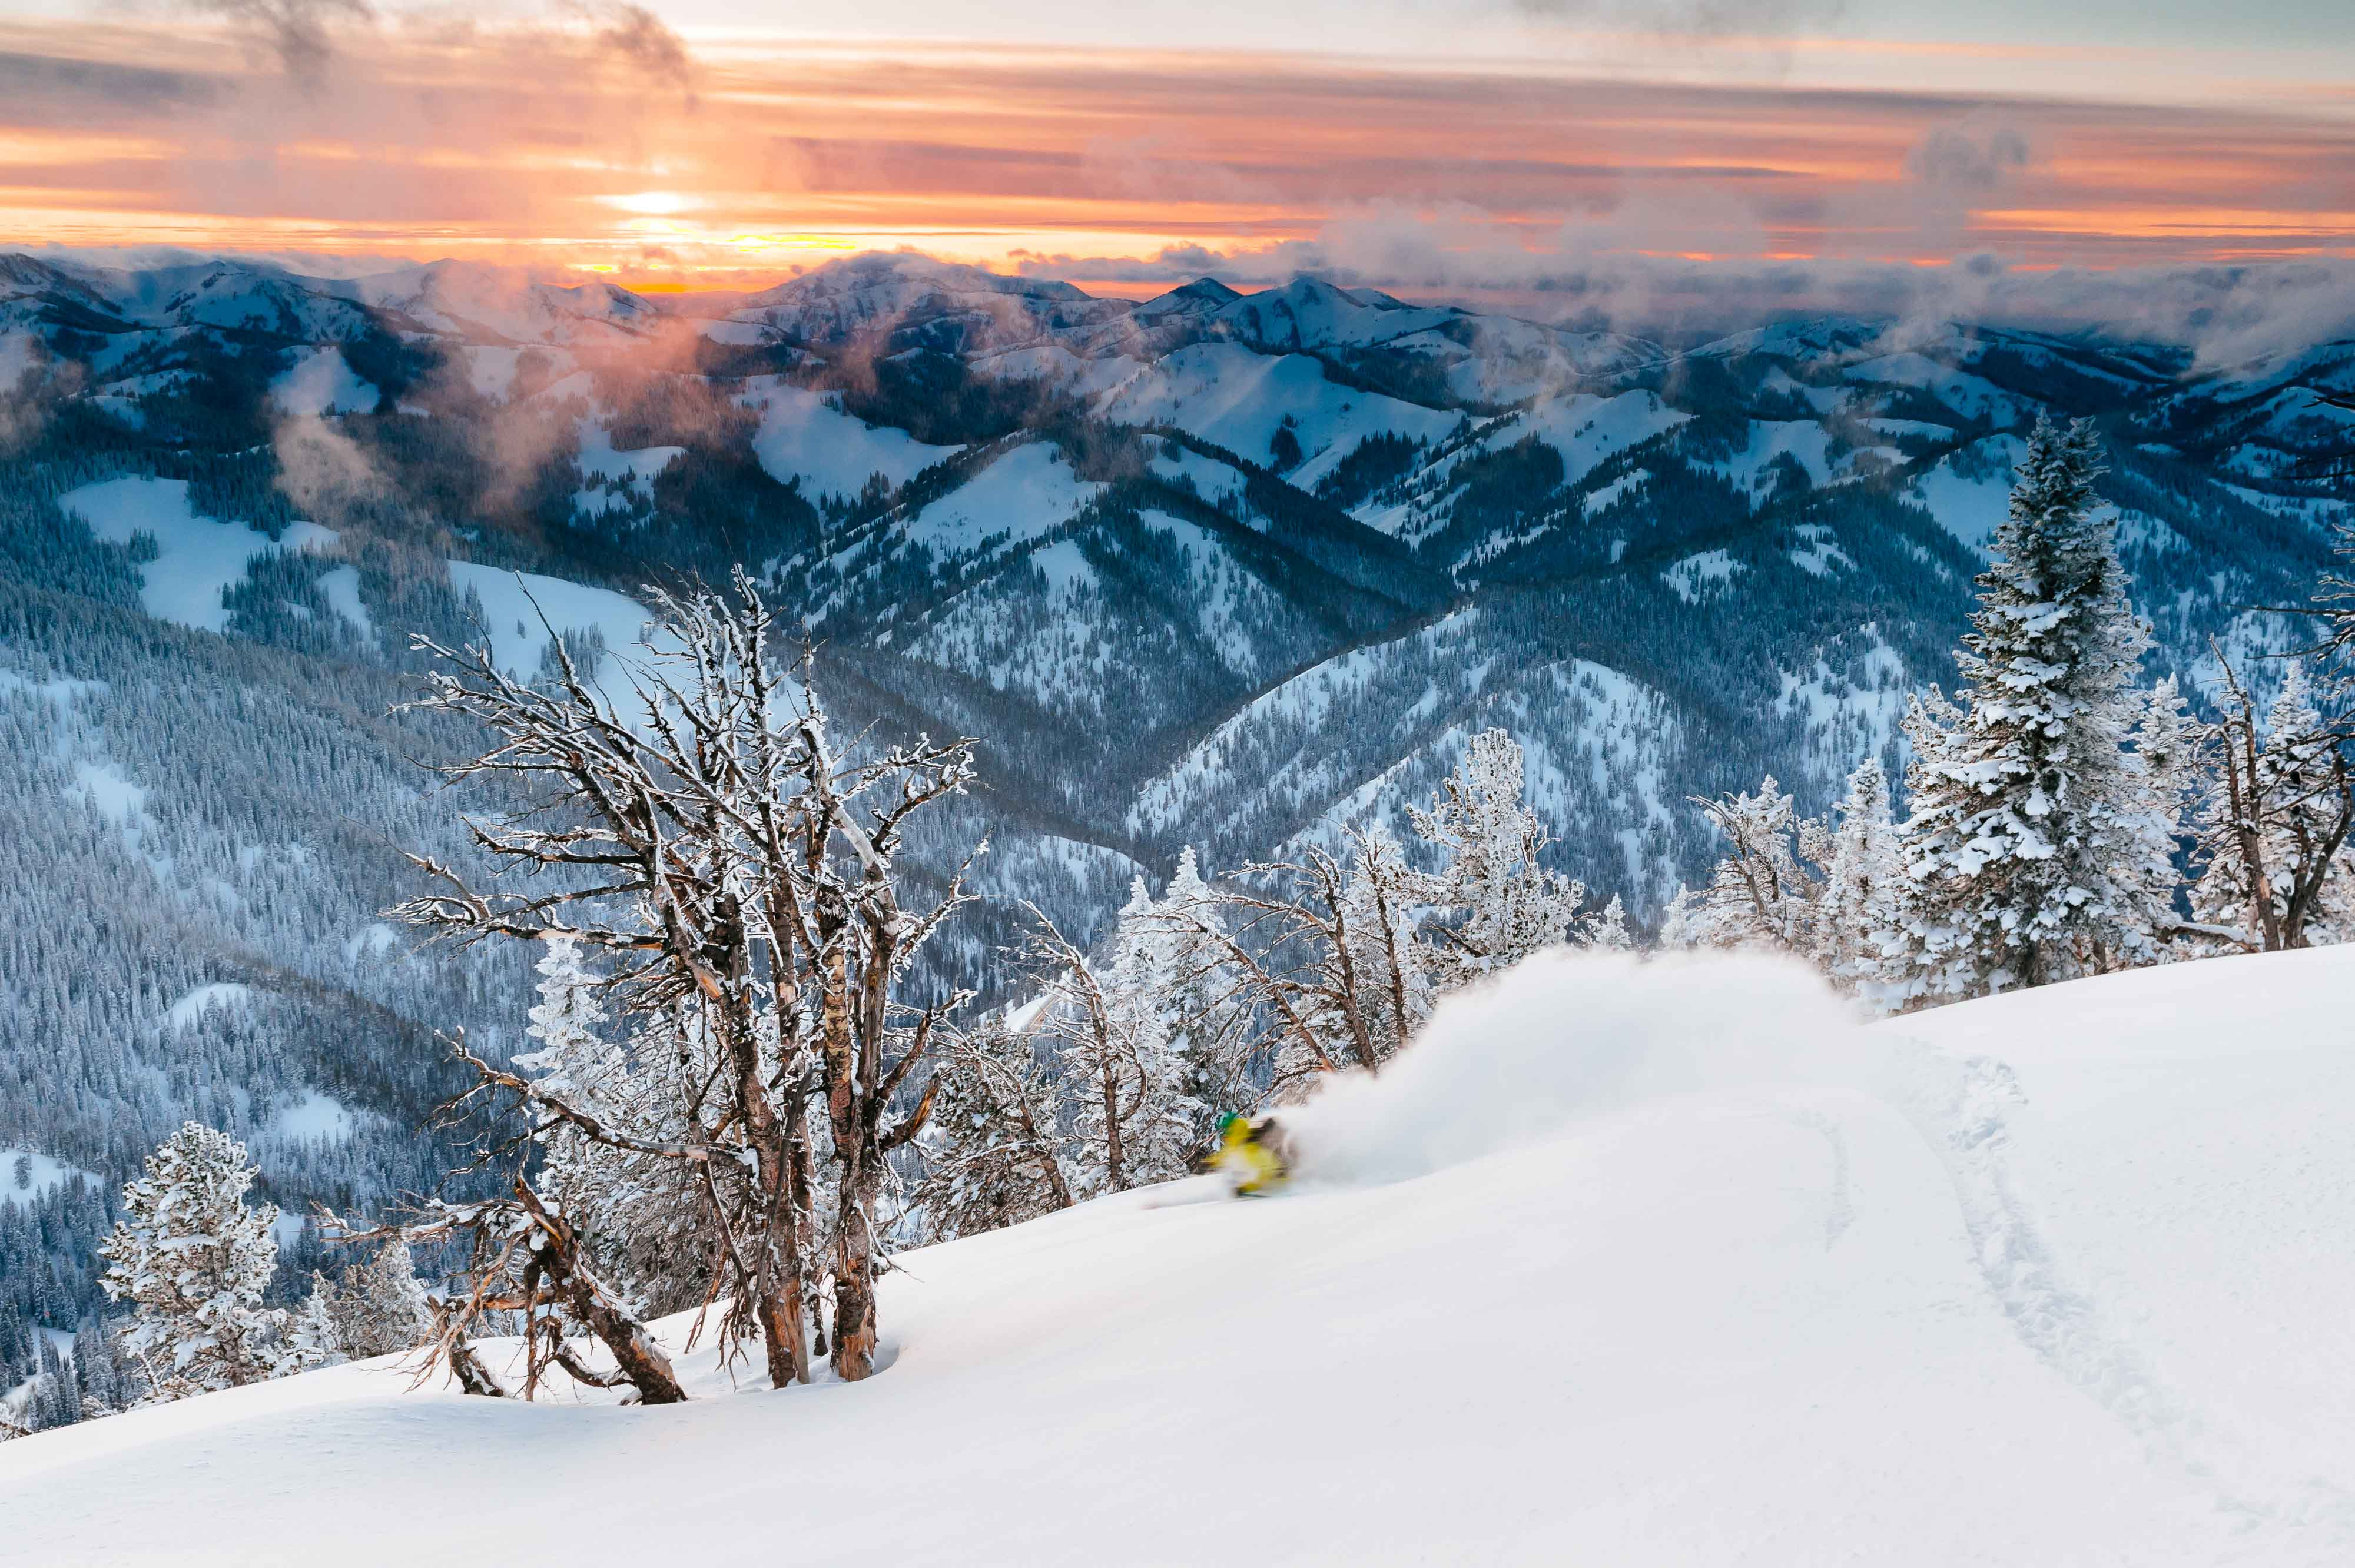 Forrest Jillson Skiing Powder at Sunset in the Tetons © Jay Goodrich